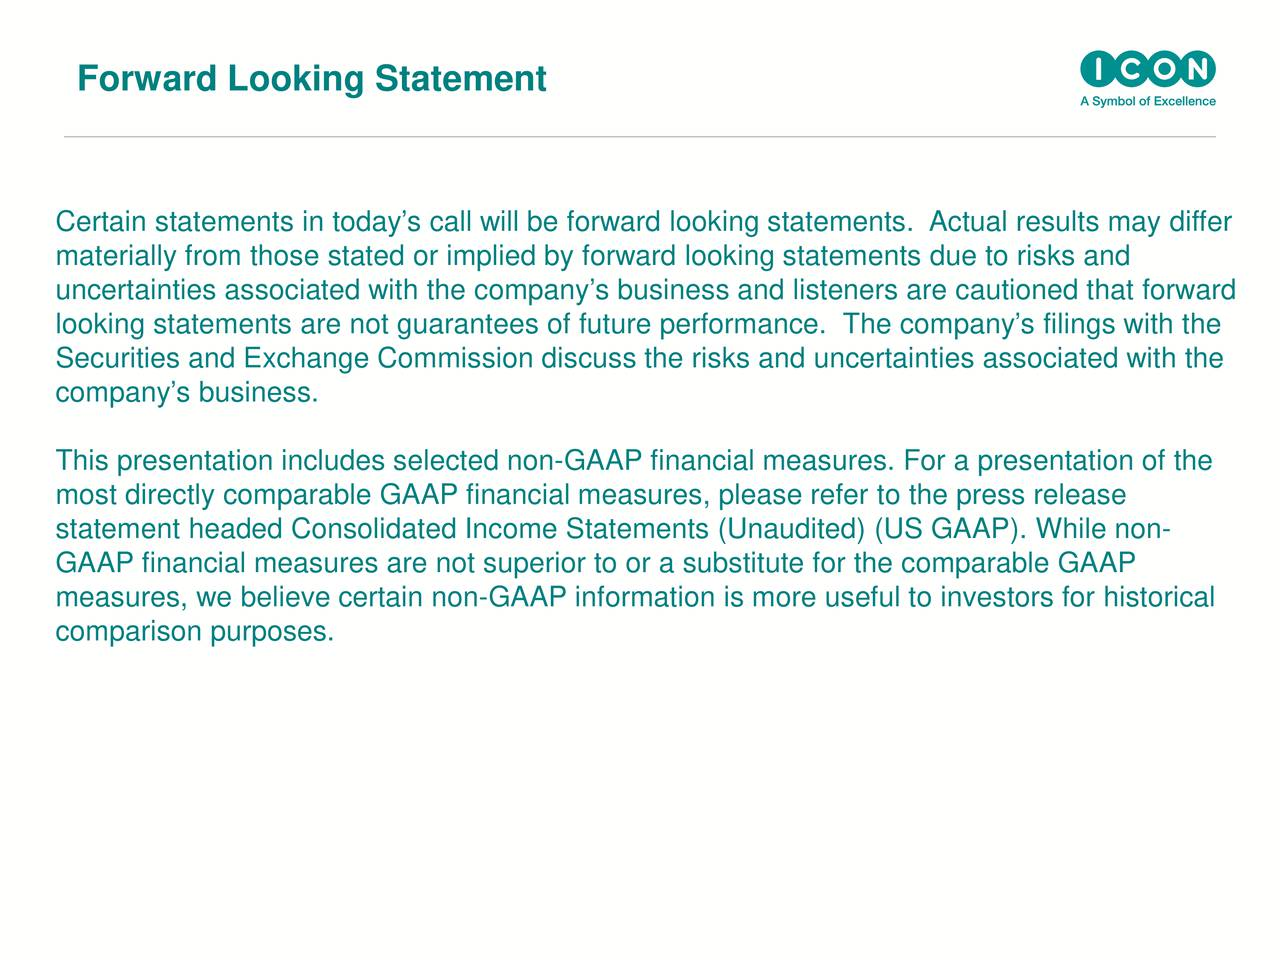 Certain statements in todays call will be forward looking statements. Actual results may differ materially from those stated or implied by forward looking statements due to risks and uncertainties associated with the companys business and listeners are cautioned that forward looking statements are not guarantees of future performance. The companys filings with the Securities and Exchange Commission discuss the risks and uncertainties associated with the companys business. This presentation includes selected non-GAAP financial measures. For a presentation of the most directly comparable GAAP financial measures, please refer to the press release statement headed Consolidated Income Statements (Unaudited) (US GAAP). While non- GAAP financial measures are not superior to or a substitute for the comparable GAAP measures, we believe certain non-GAAP information is more useful to investors for historical comparison purposes.